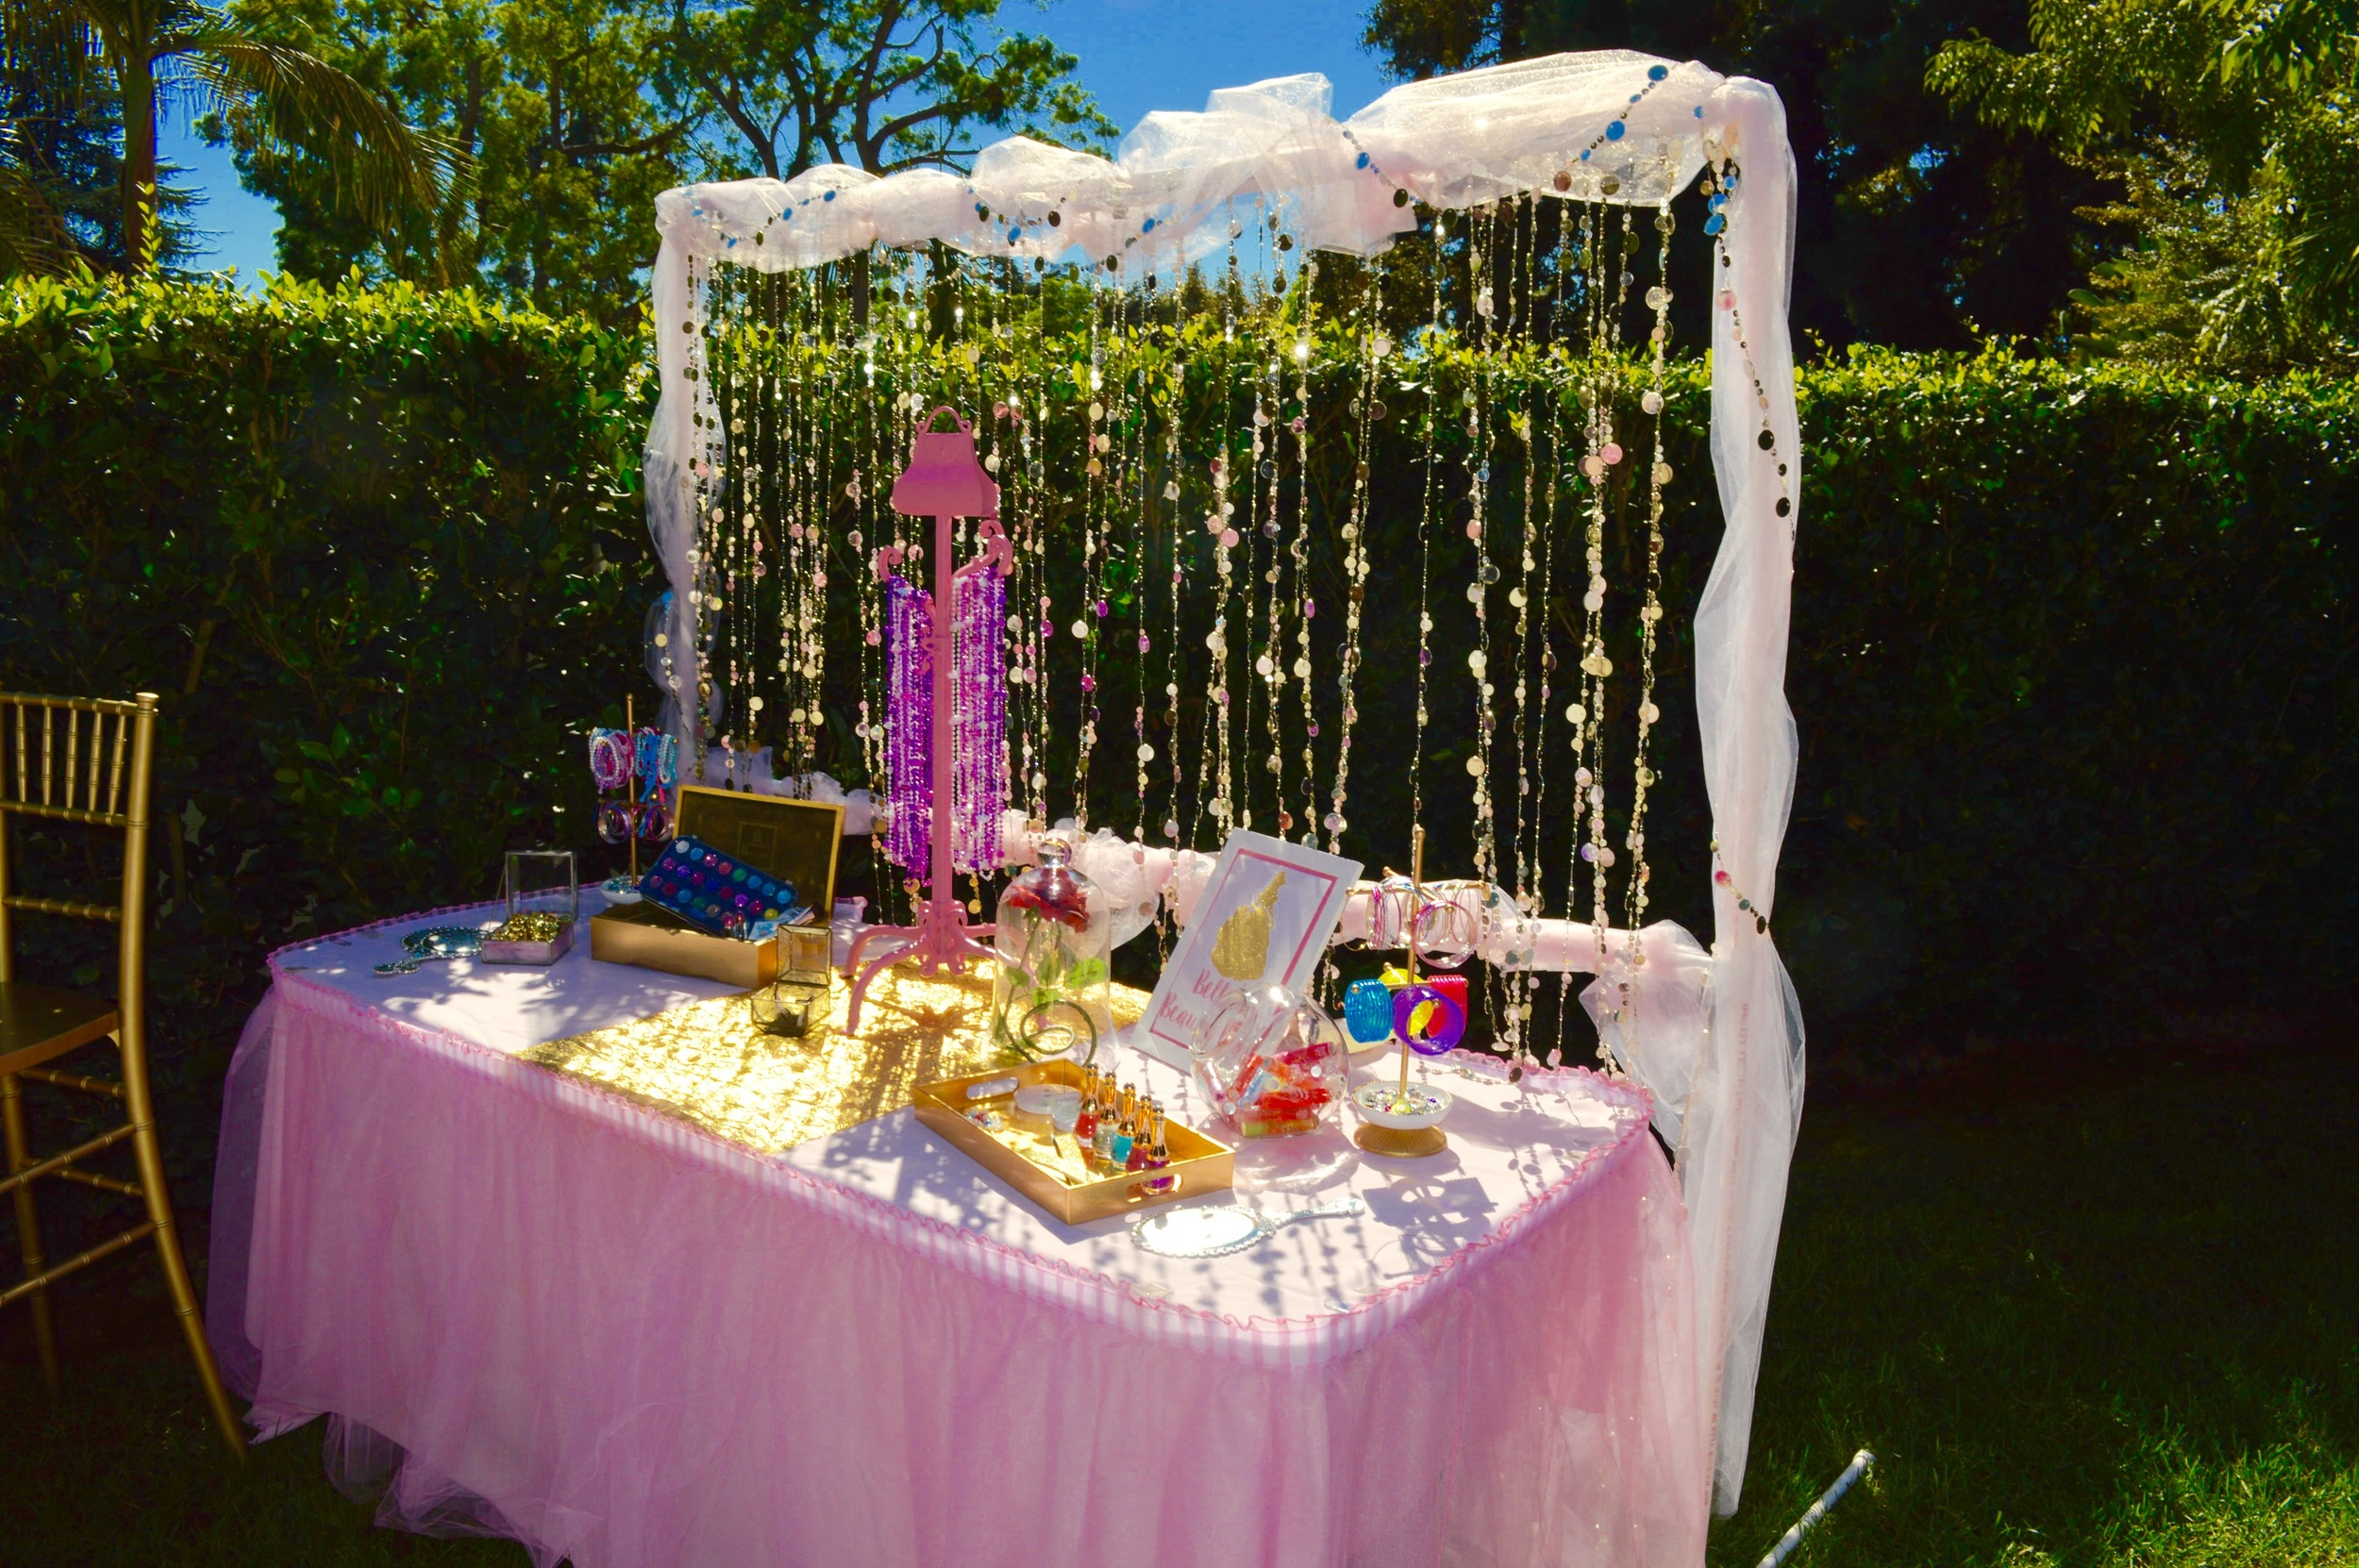 Belle's Beauty Bar feature a gold jeweled backdrop that shimmered in the sun.